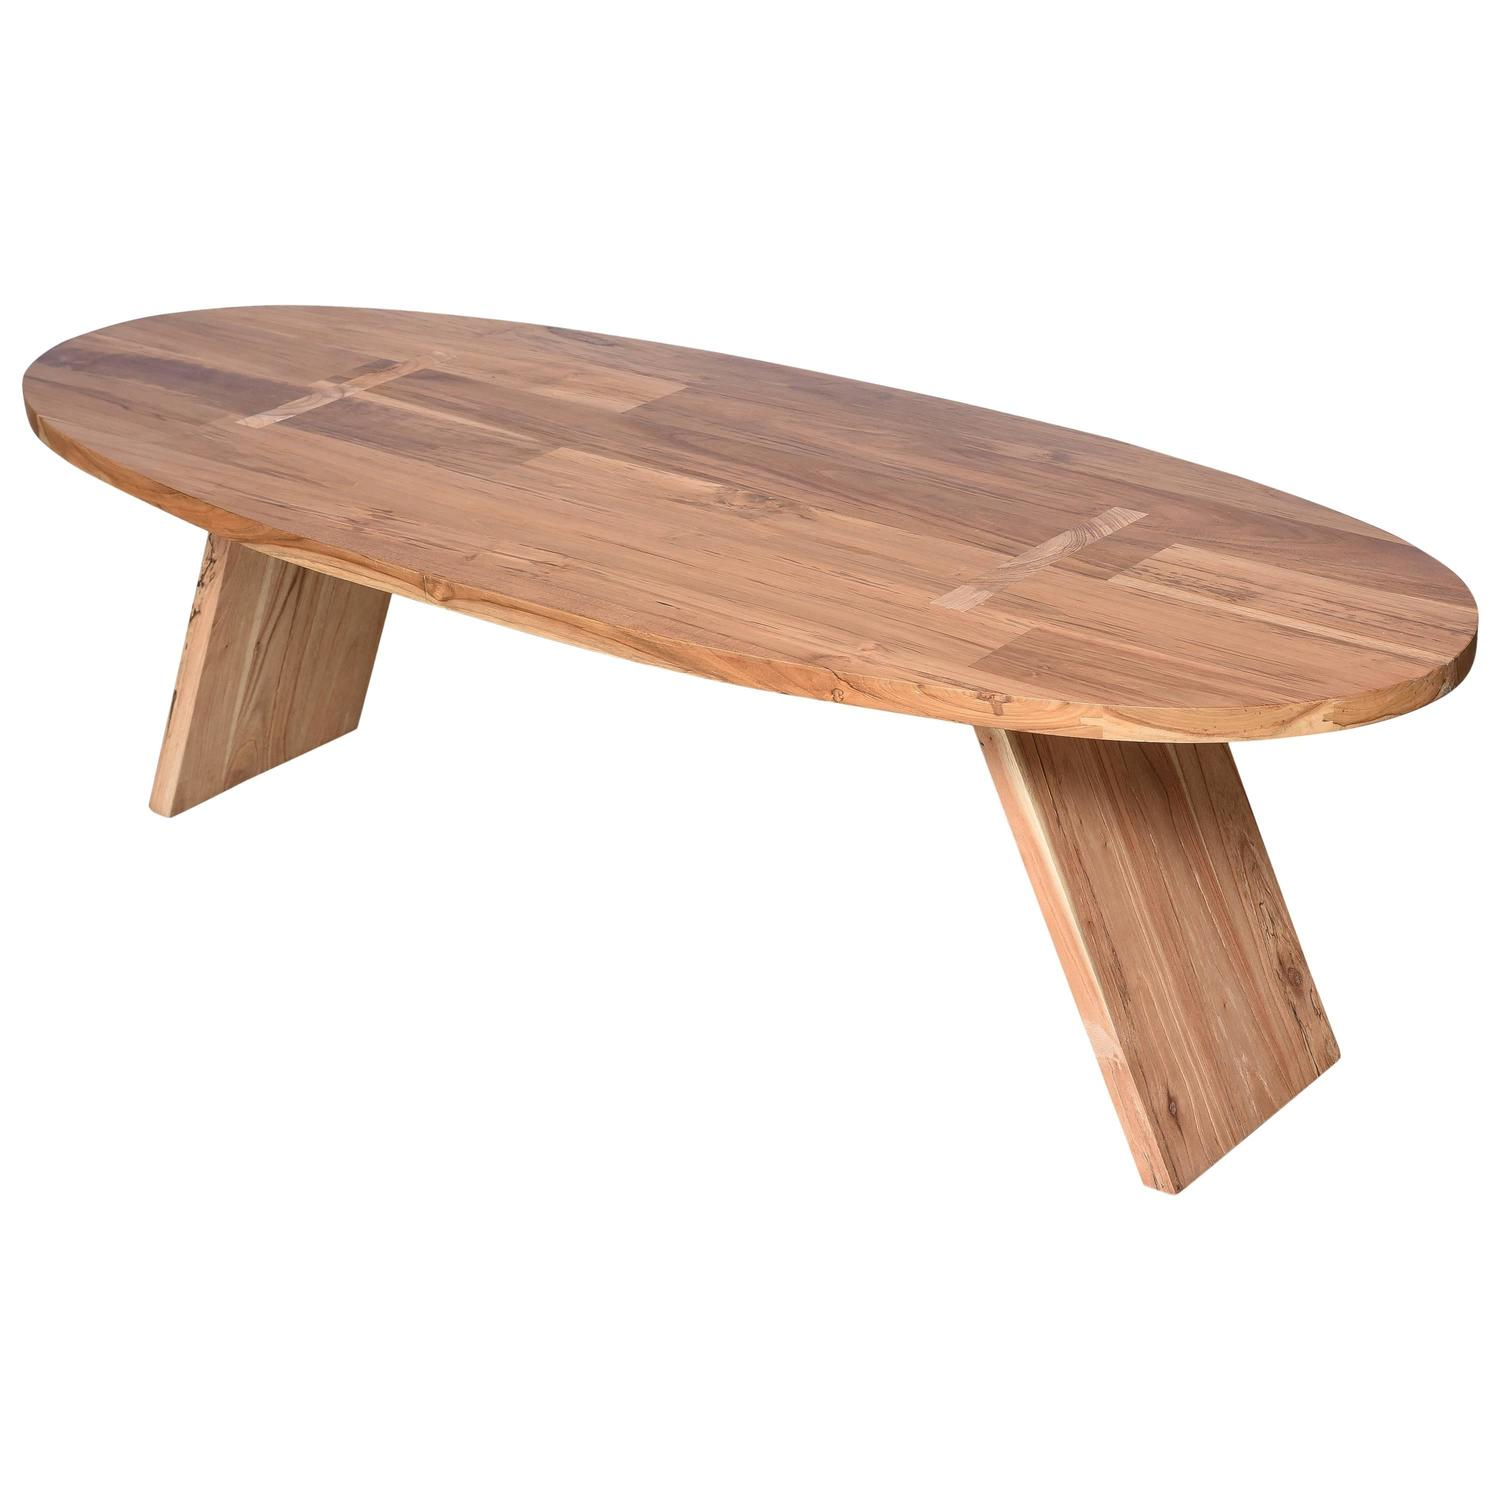 Coffee Table Teak Wood oval surfboard shape Handmade unique